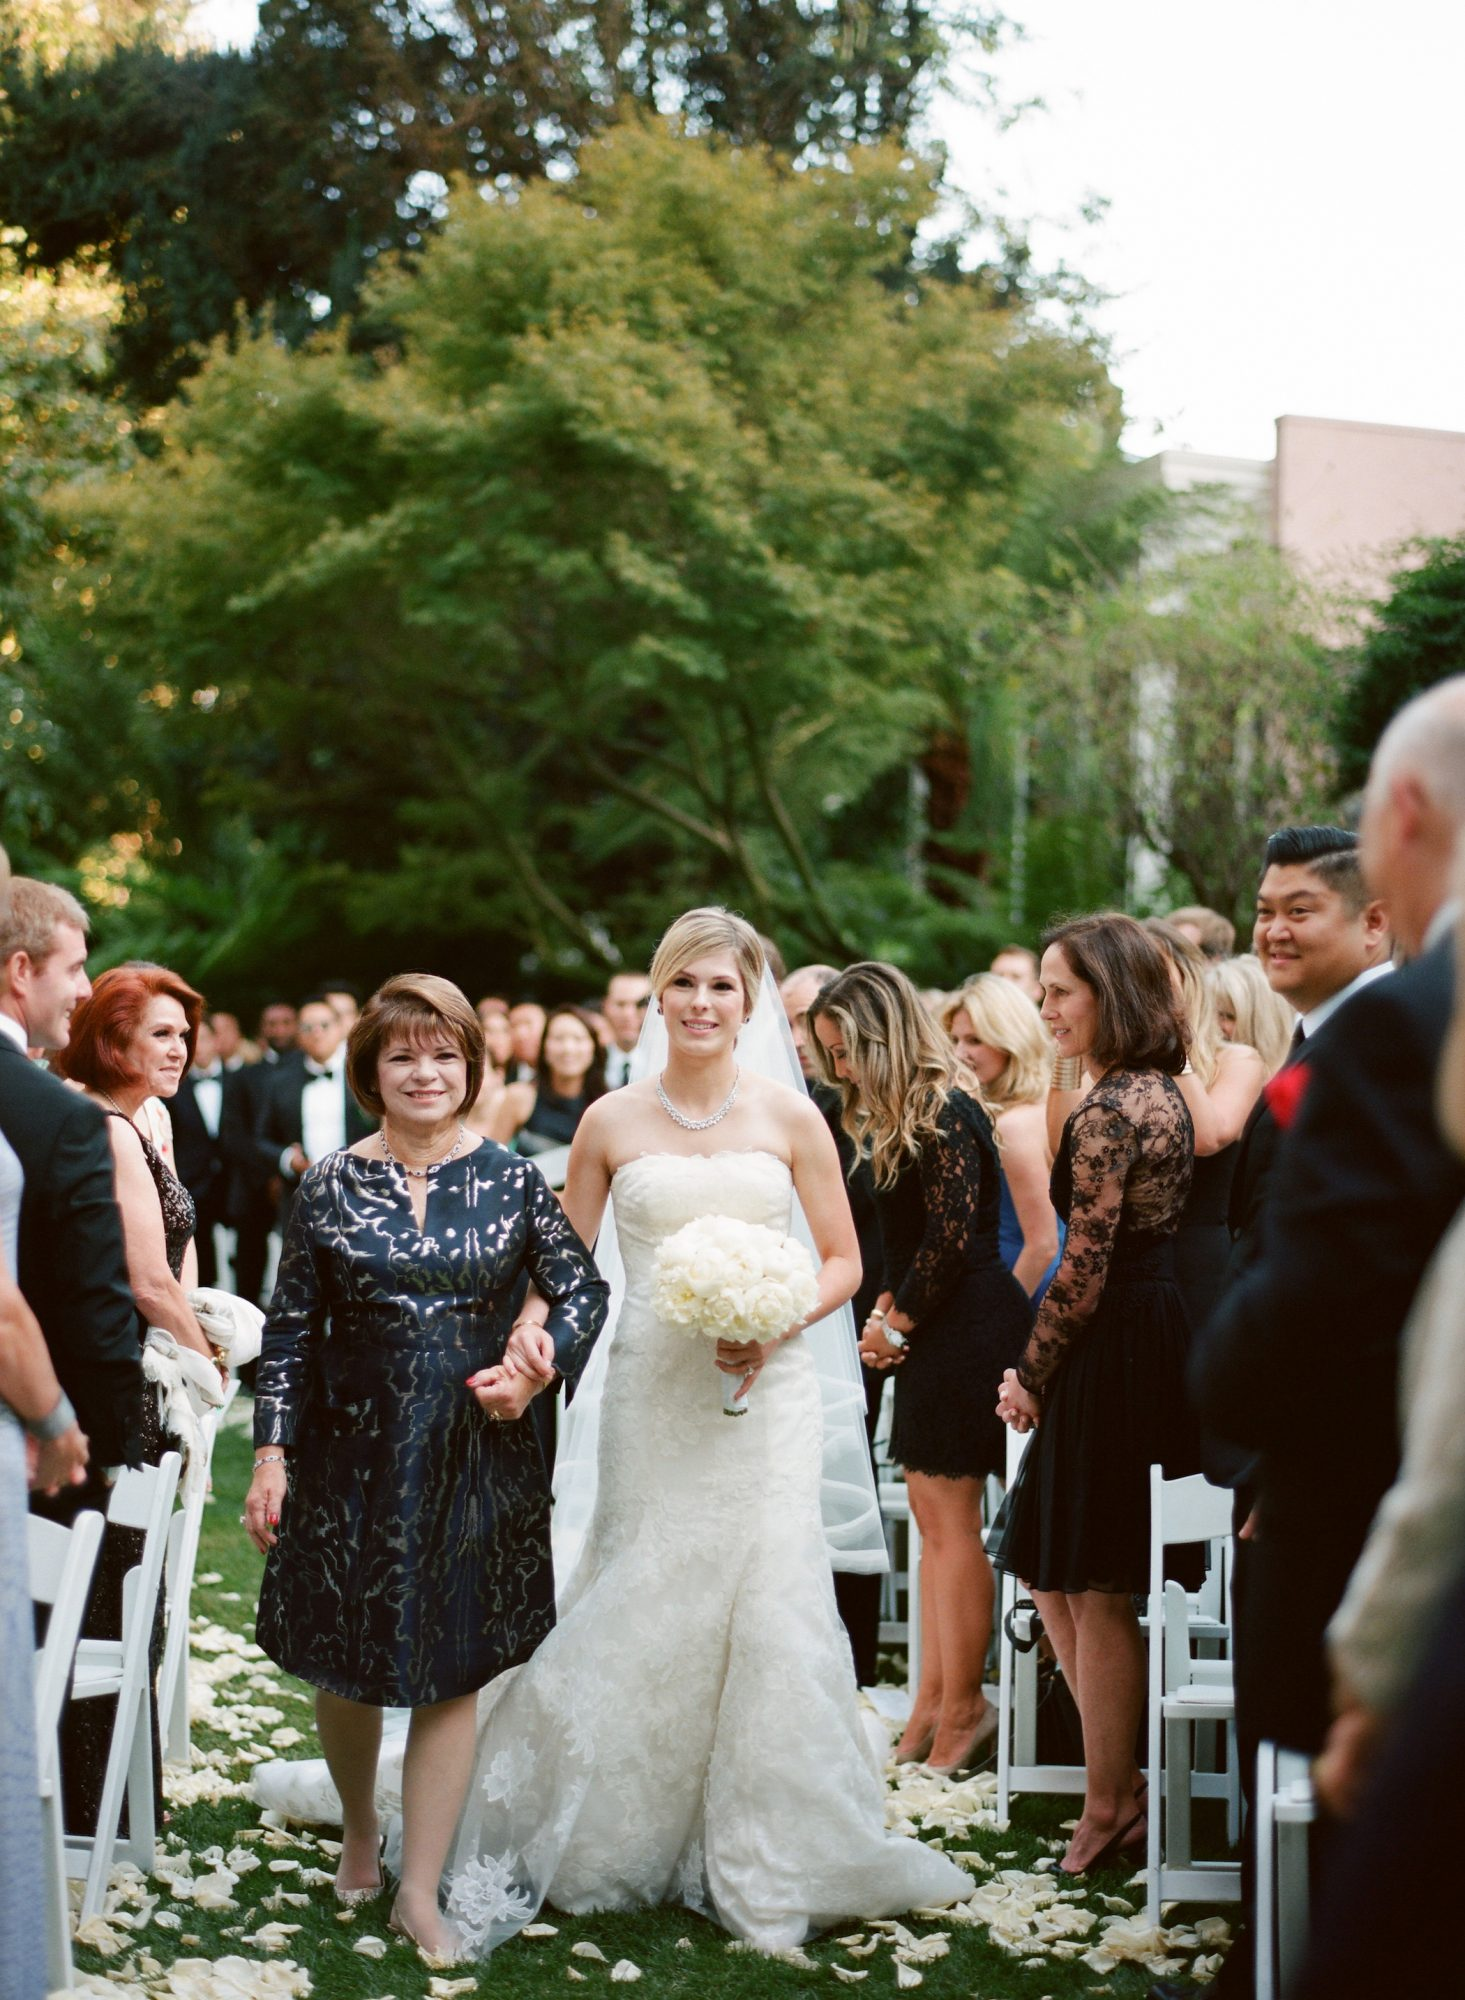 A Bride Walking Down the Aisle with Her Mother